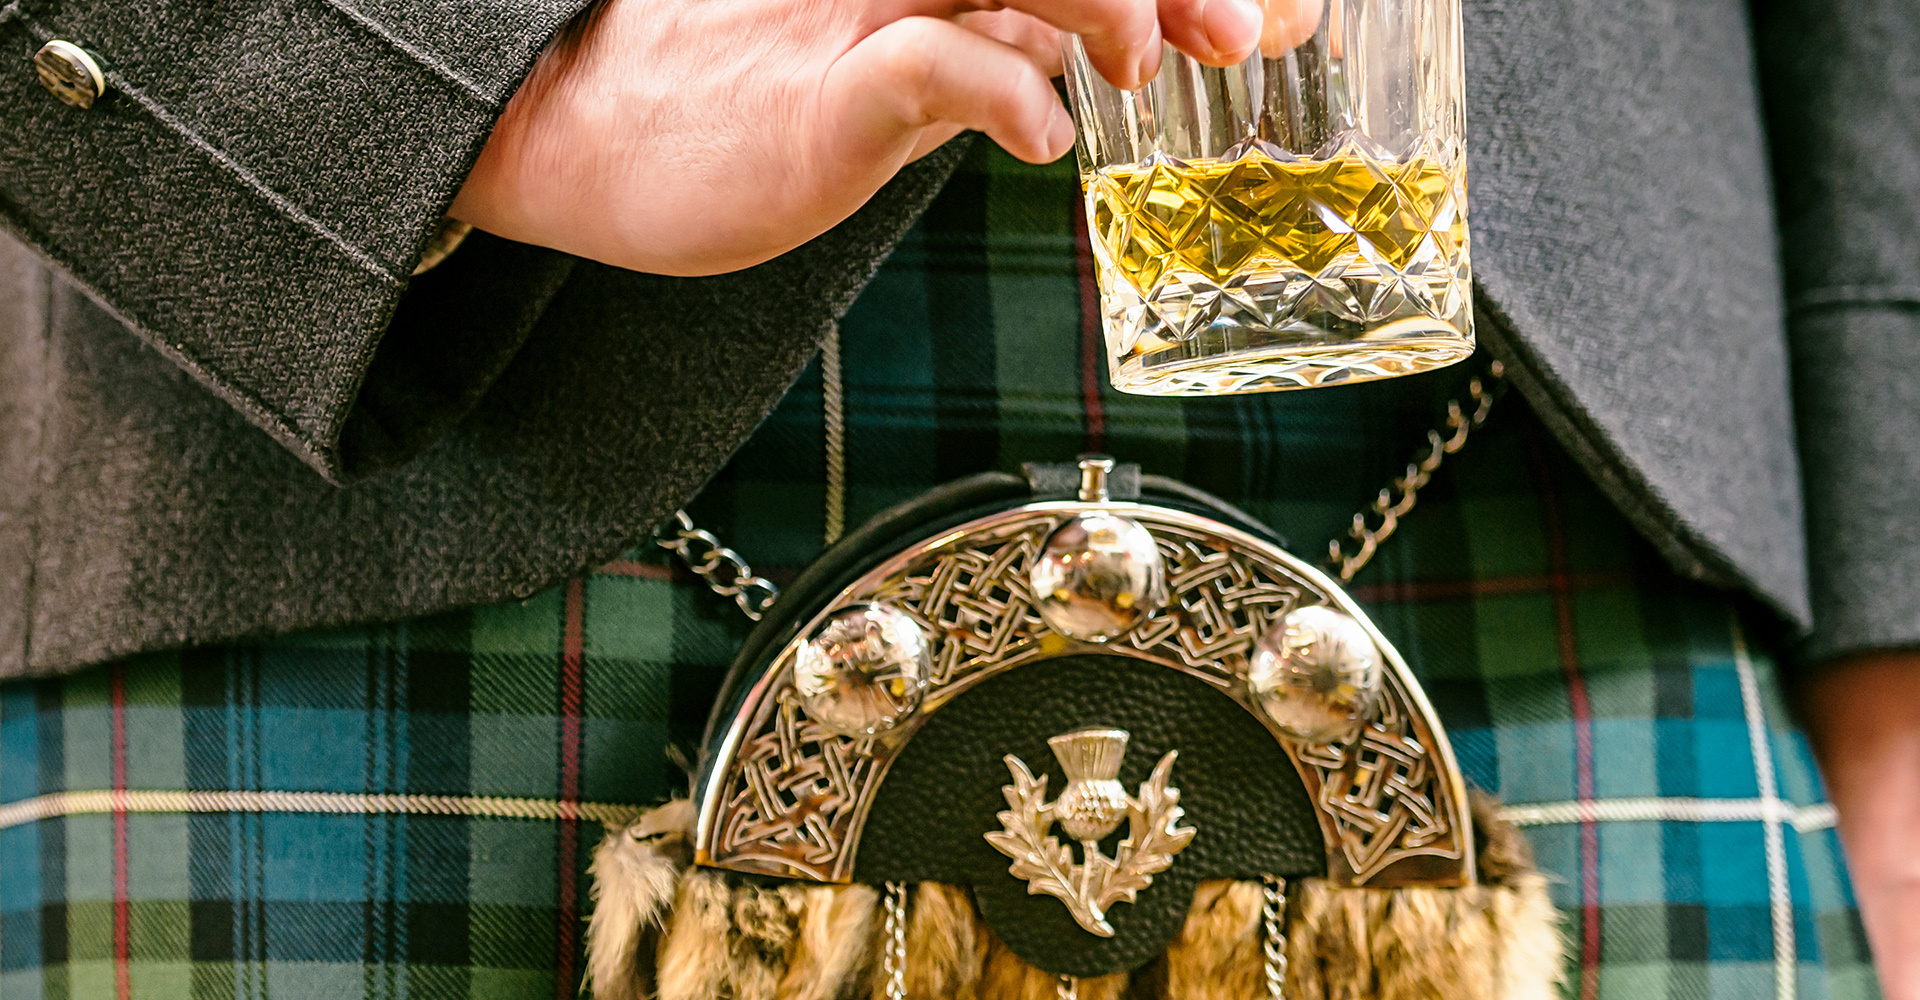 Whisky Tasting at Launay's